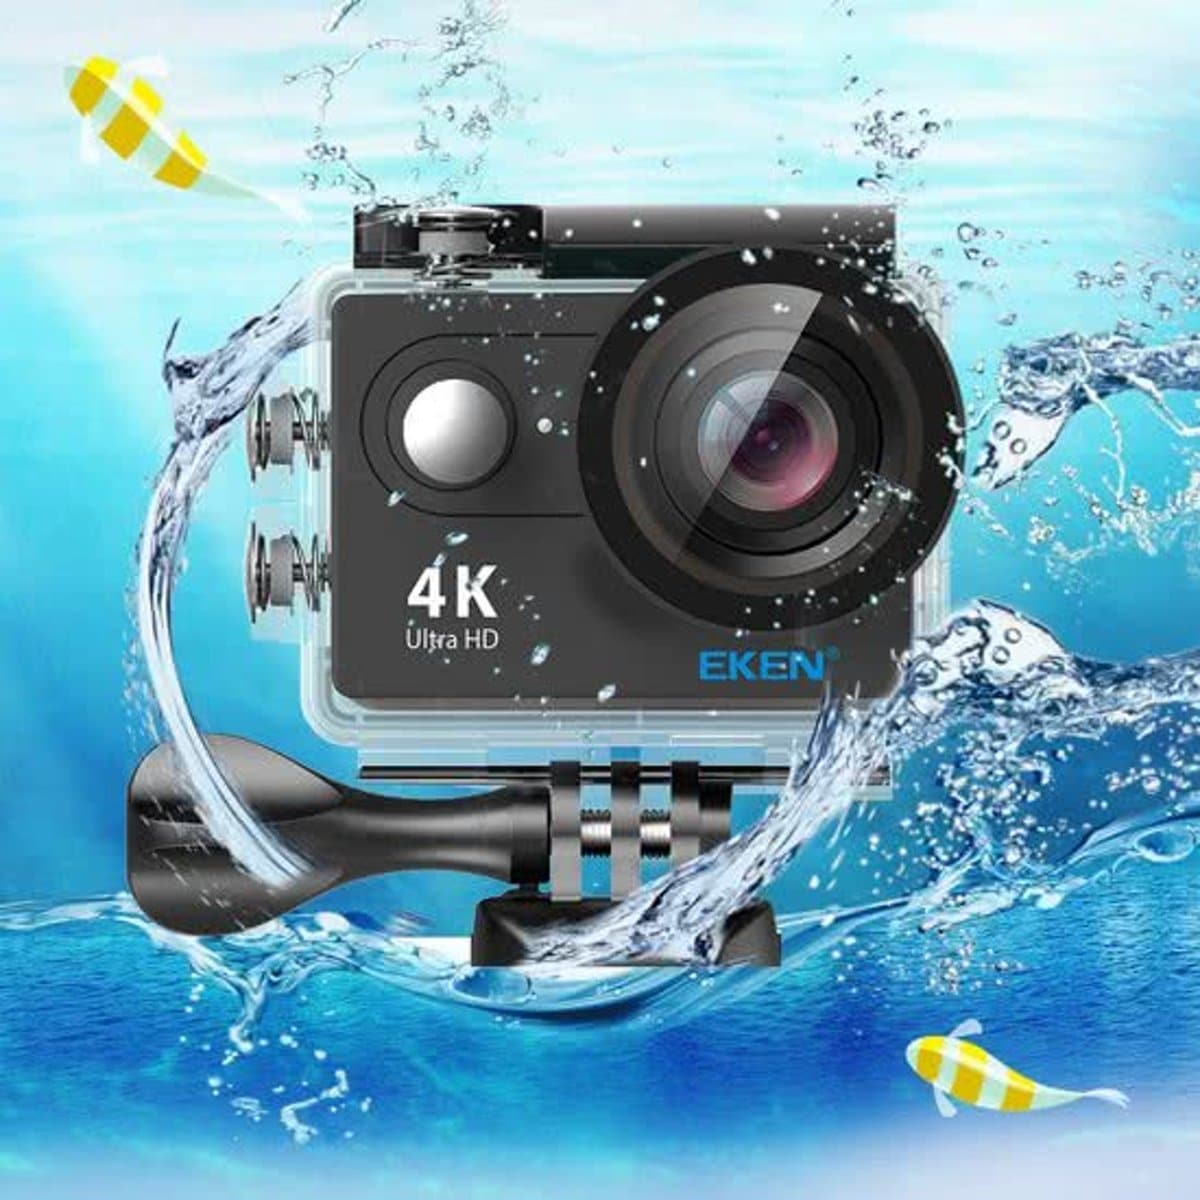 EKEN H9R review 4k action camera